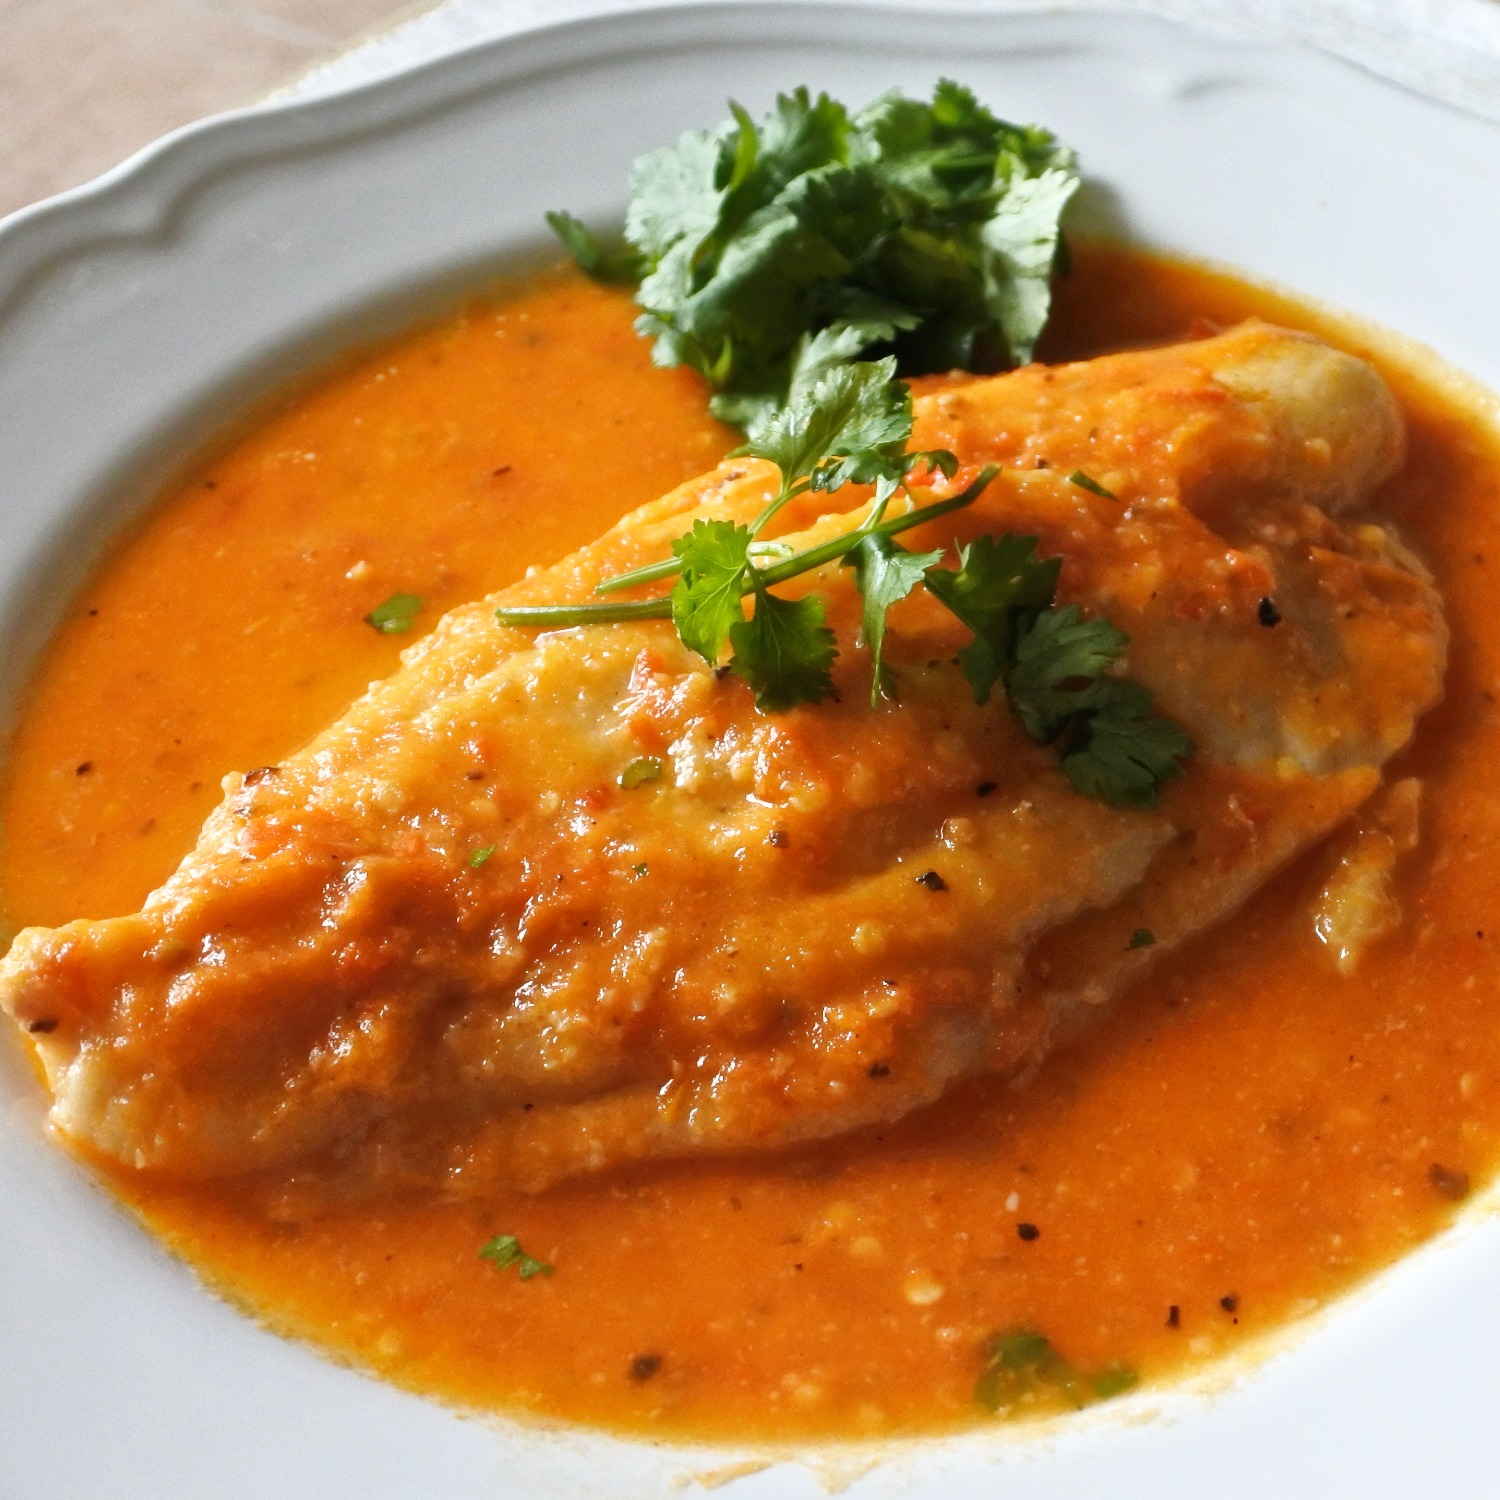 John Dory poached in a spicy tomato, chile and wine broth